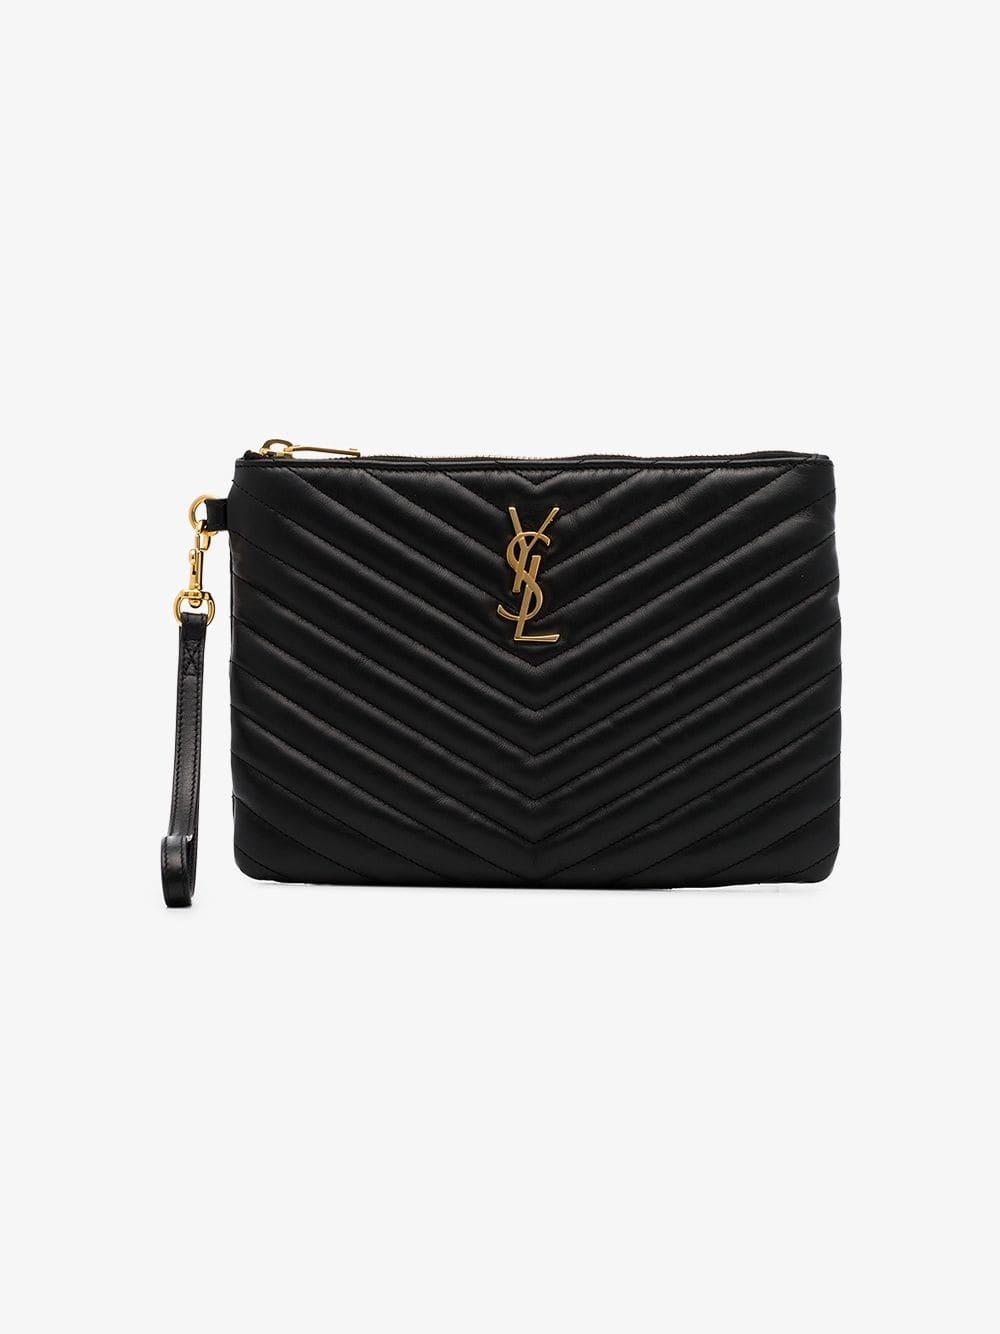 257b2e863c7 Saint Laurent Black Quilted Leather Clutch Bag in Black - Save  10.526315789473685% - Lyst